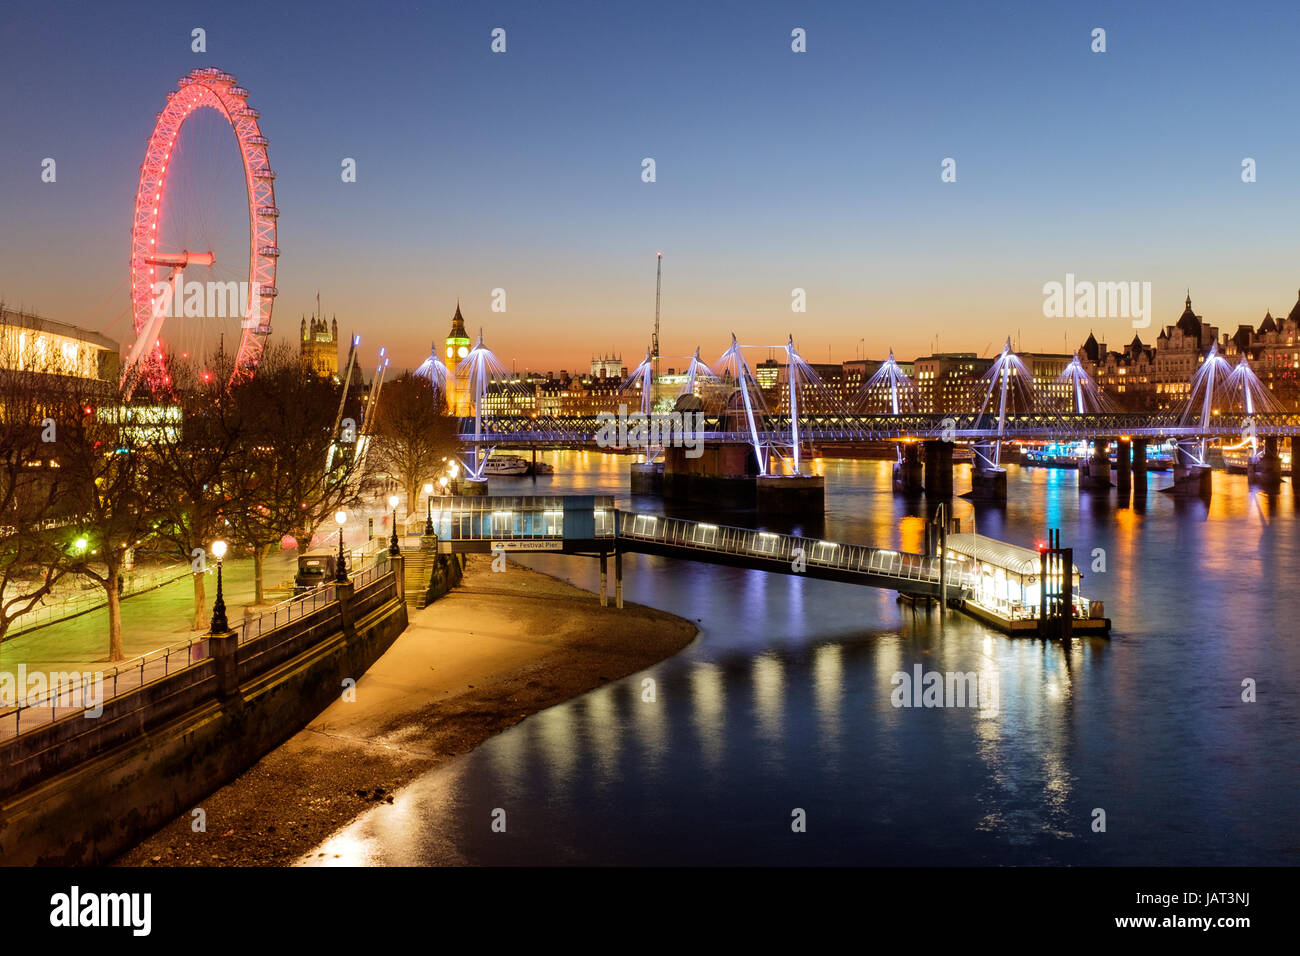 Sunset over London's South Bank & River Thames - Stock Image